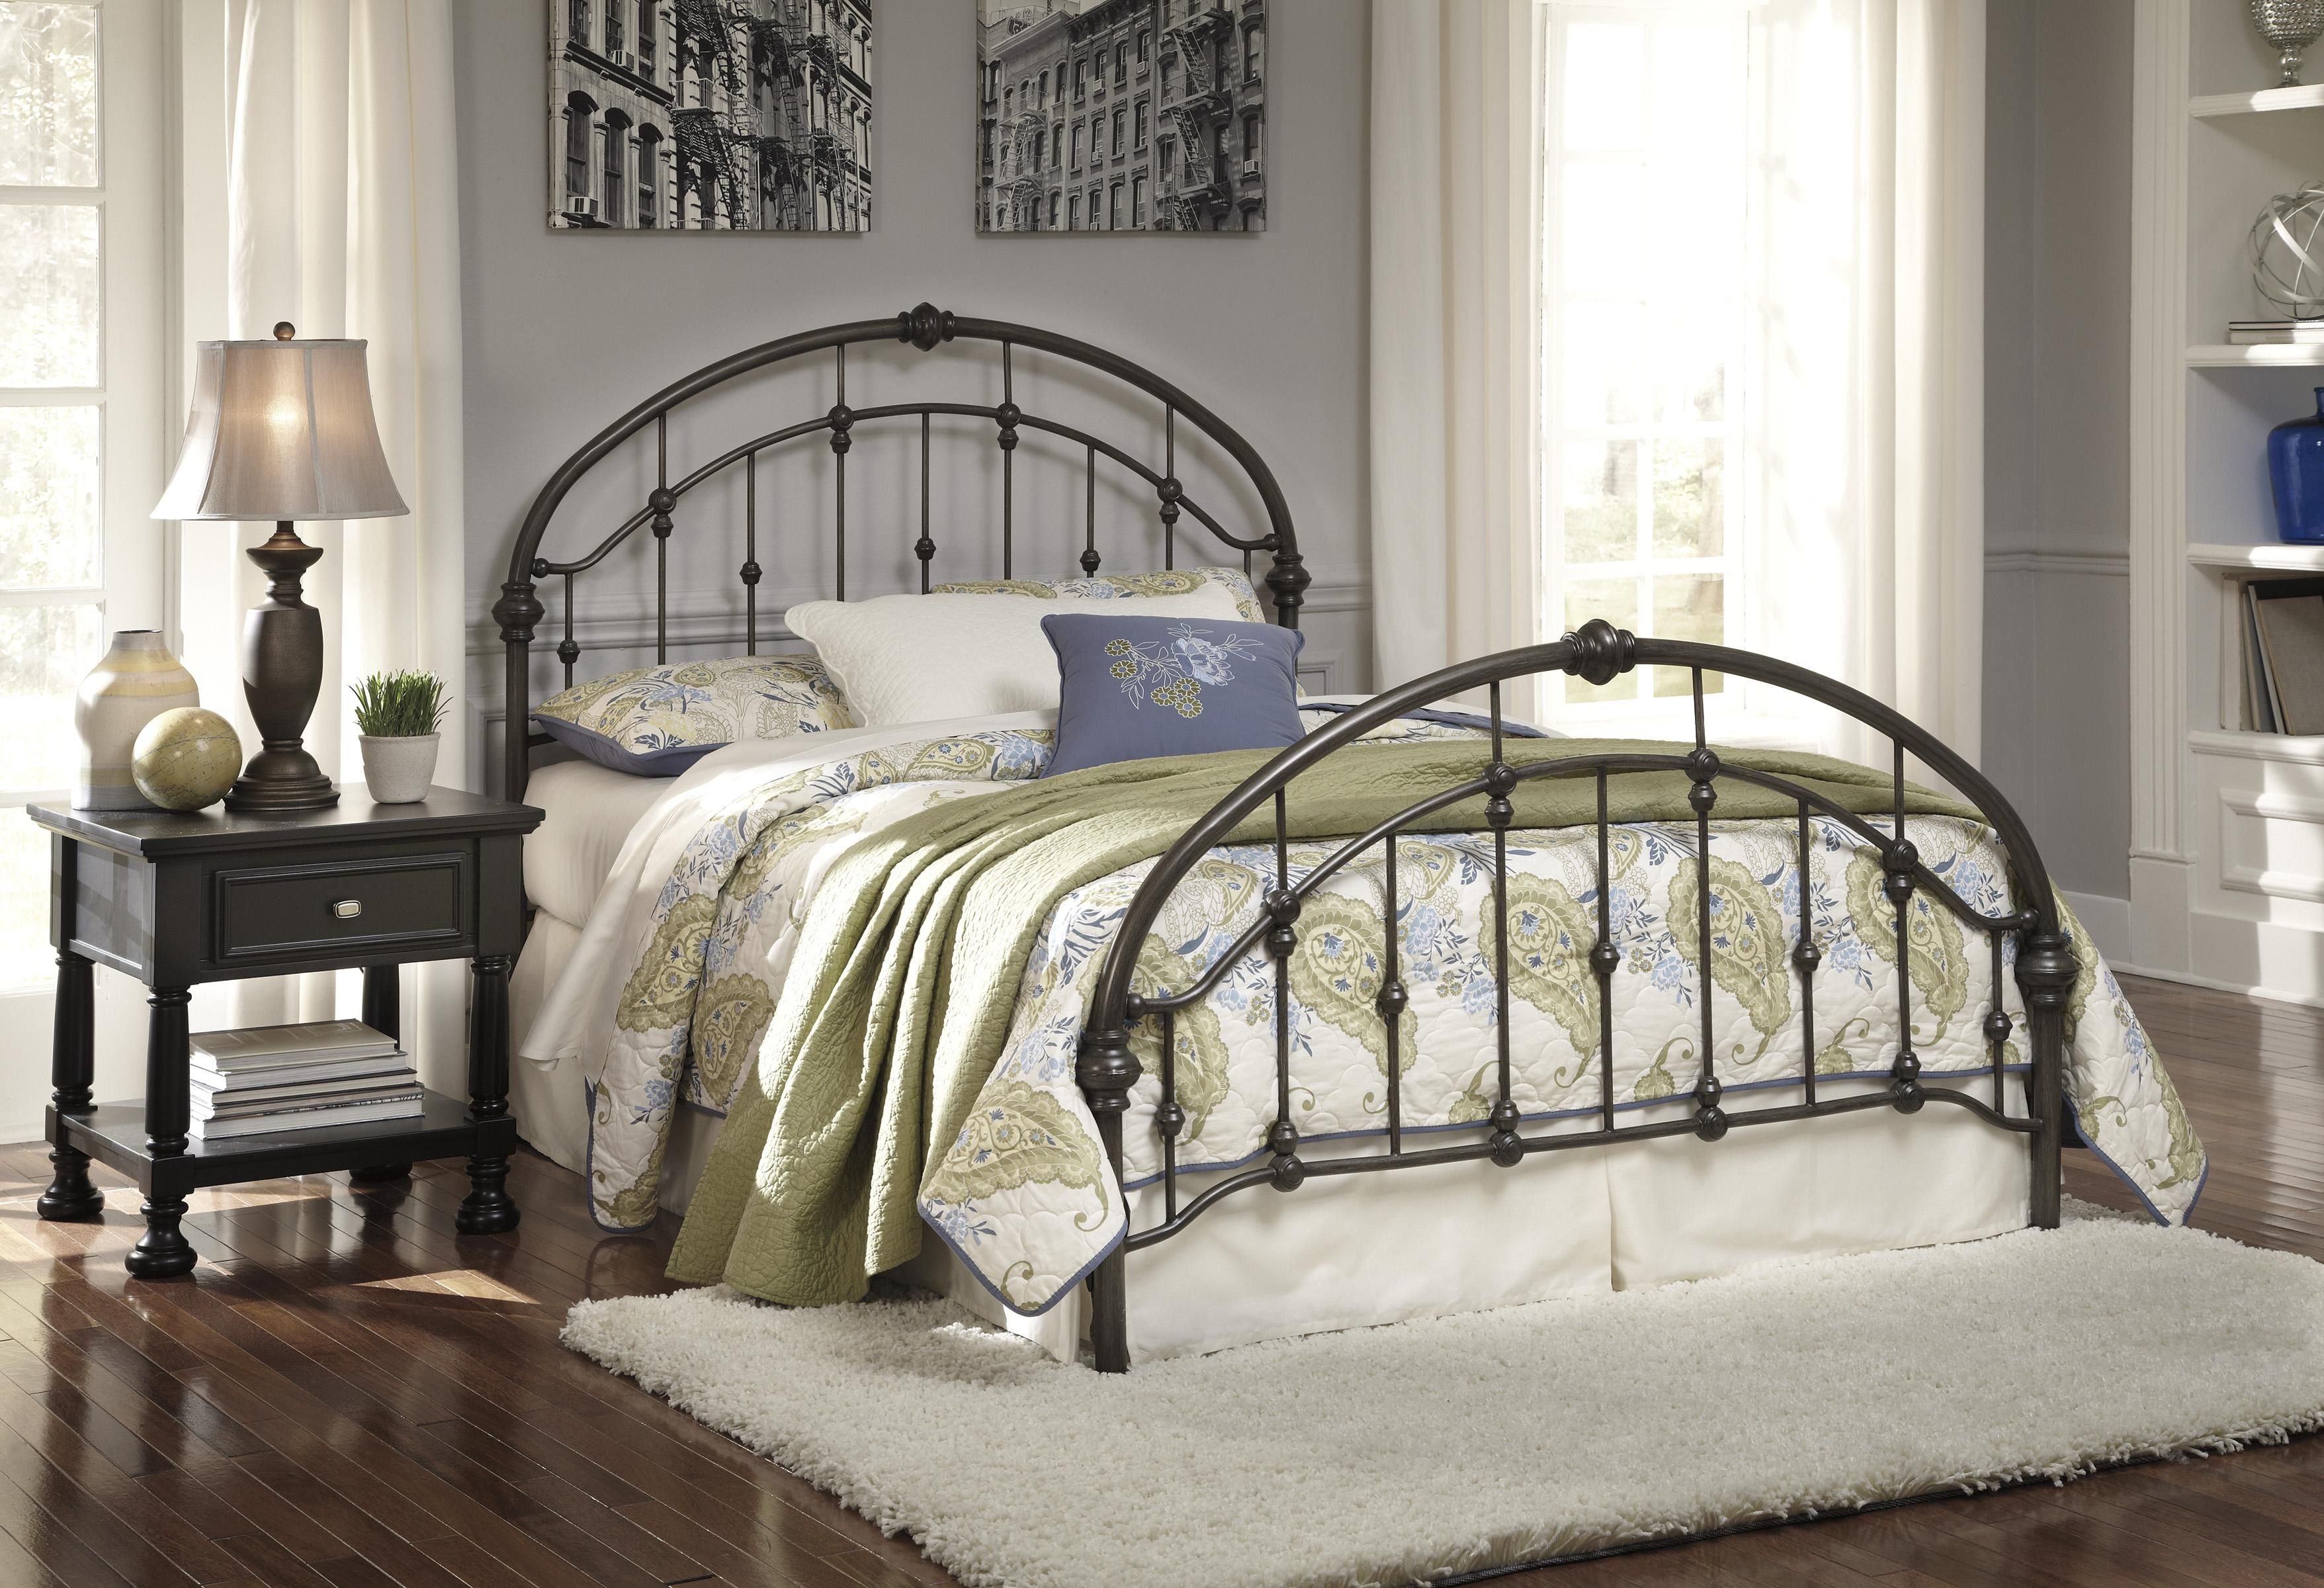 Top Metal Bett Design Bett Mobel Ashley Mobel Bett